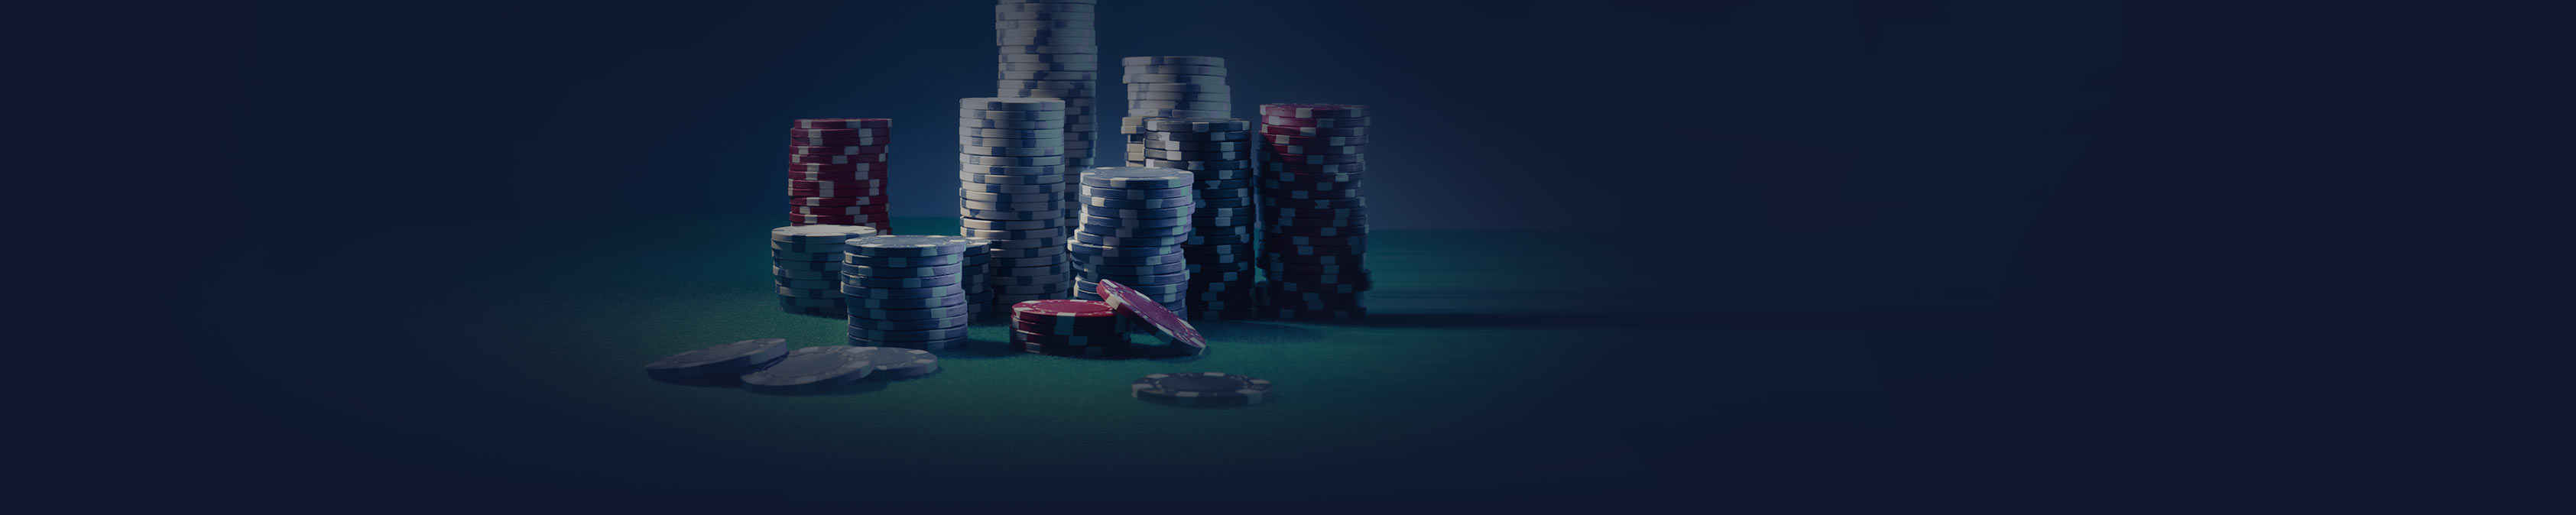 Online poker casinosearch.eu